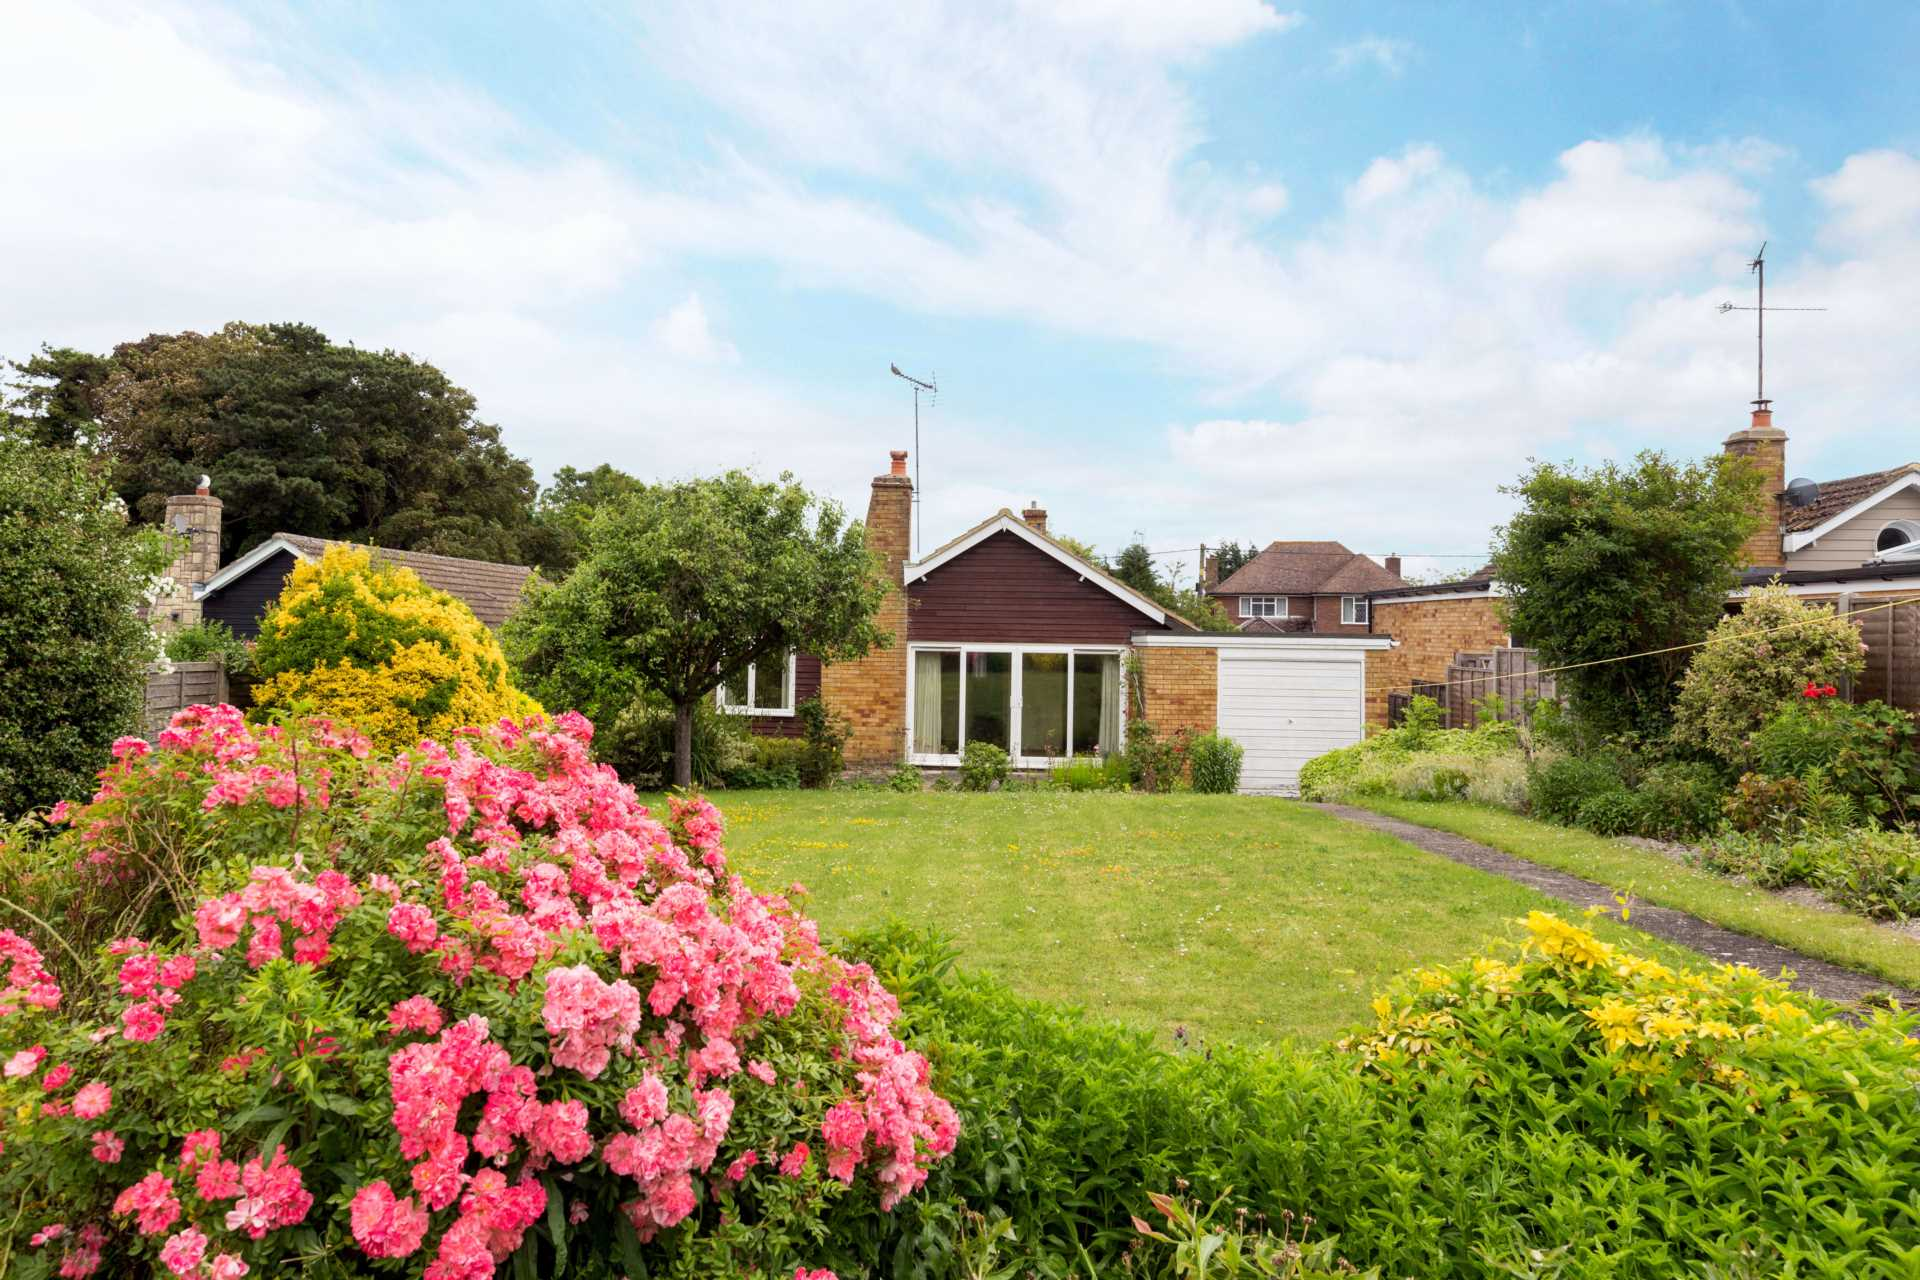 3 Bedroom Bungalow For Sale Dundale Road Tring Hp23 5bz